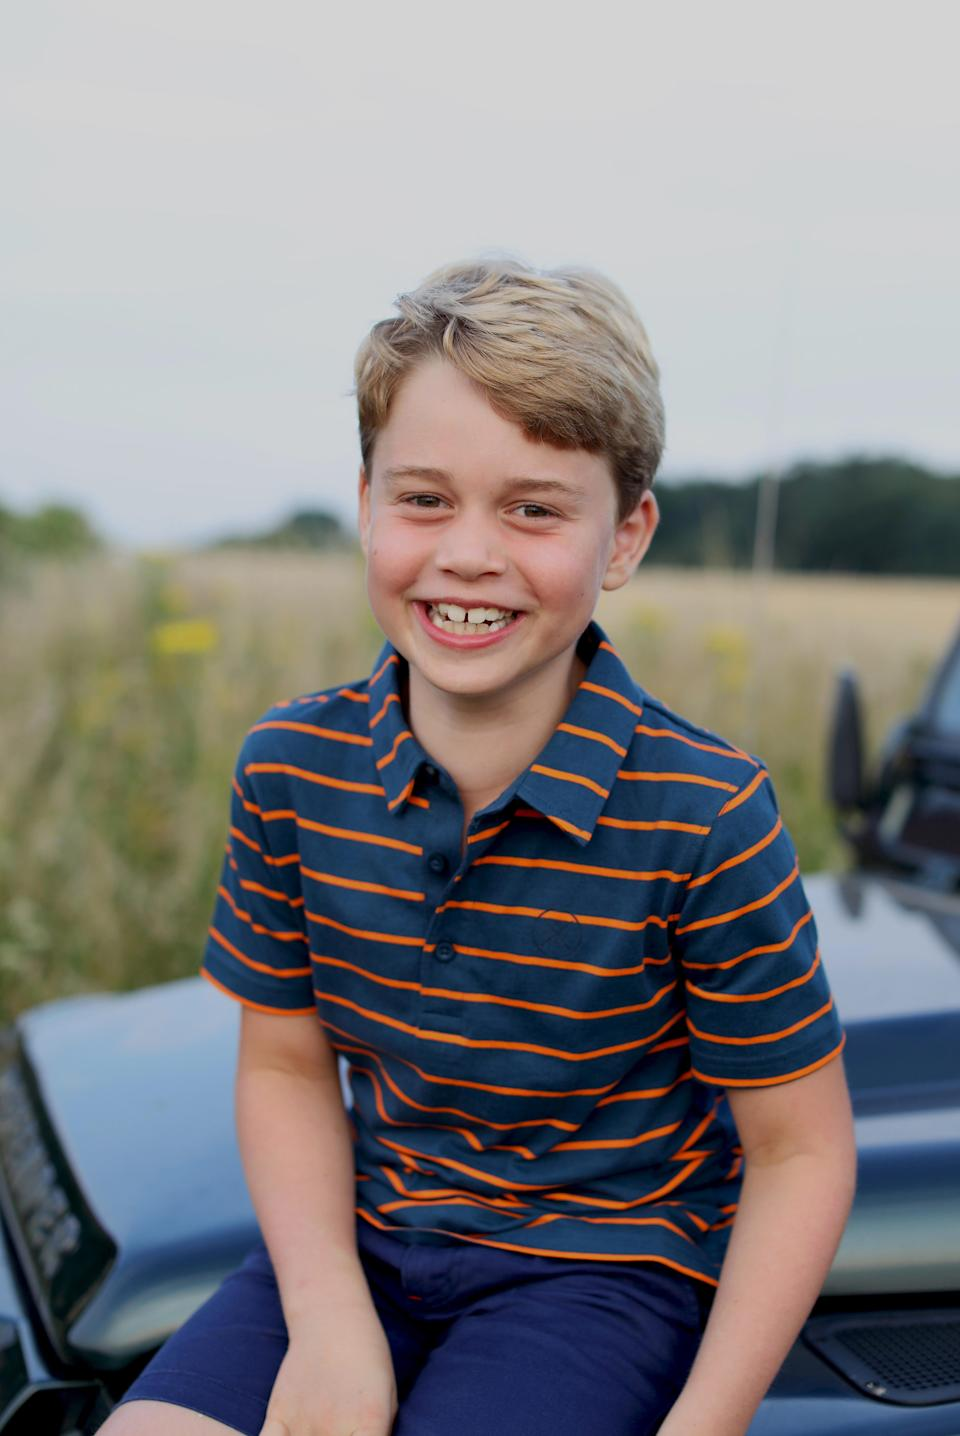 Prince George, whose eighth birthday is on Thursday, poses for a photograph taken by his mother, the Duchess of Cambridge, earlier this month in Norfolk, United Kingdom.